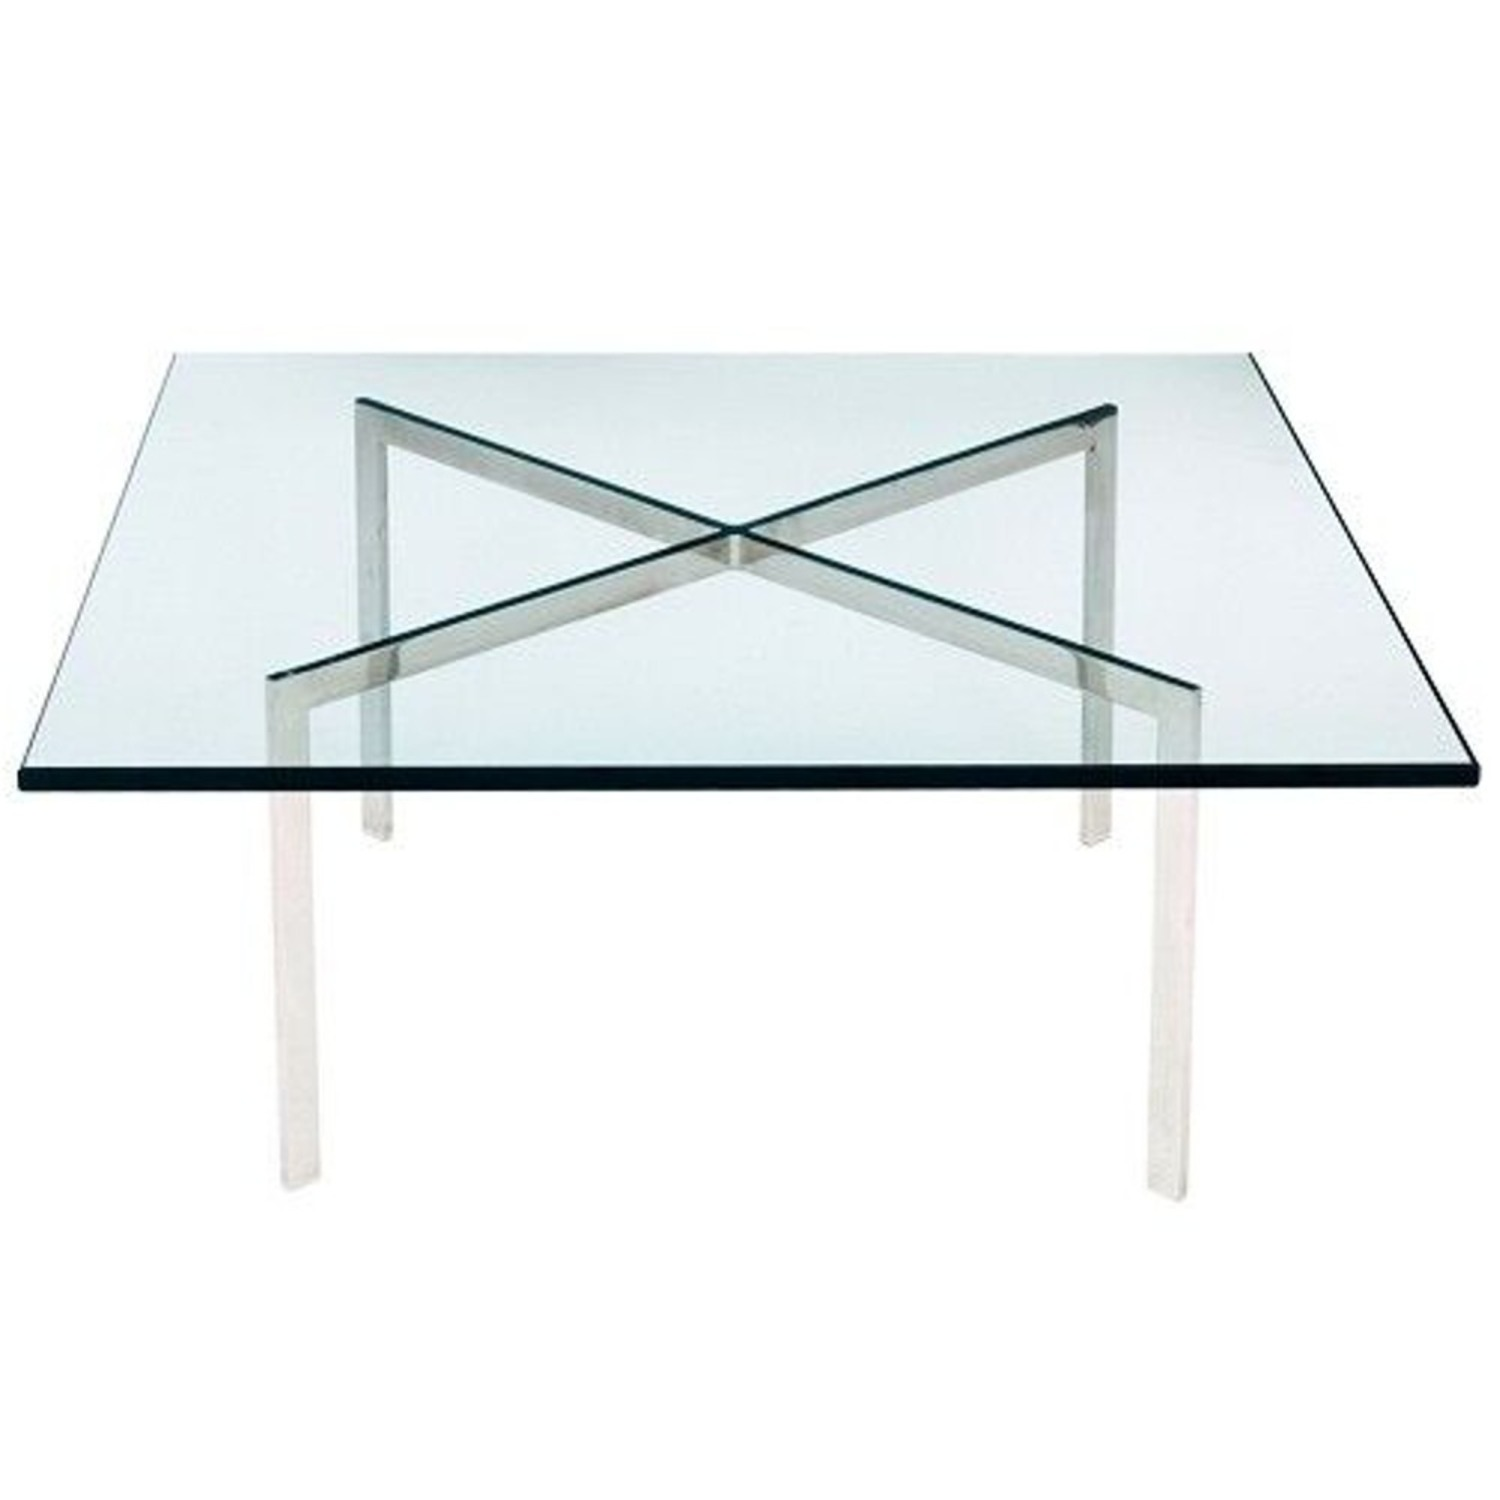 Coffee Table In Stainless Steel Frame & Glass Top - image-0